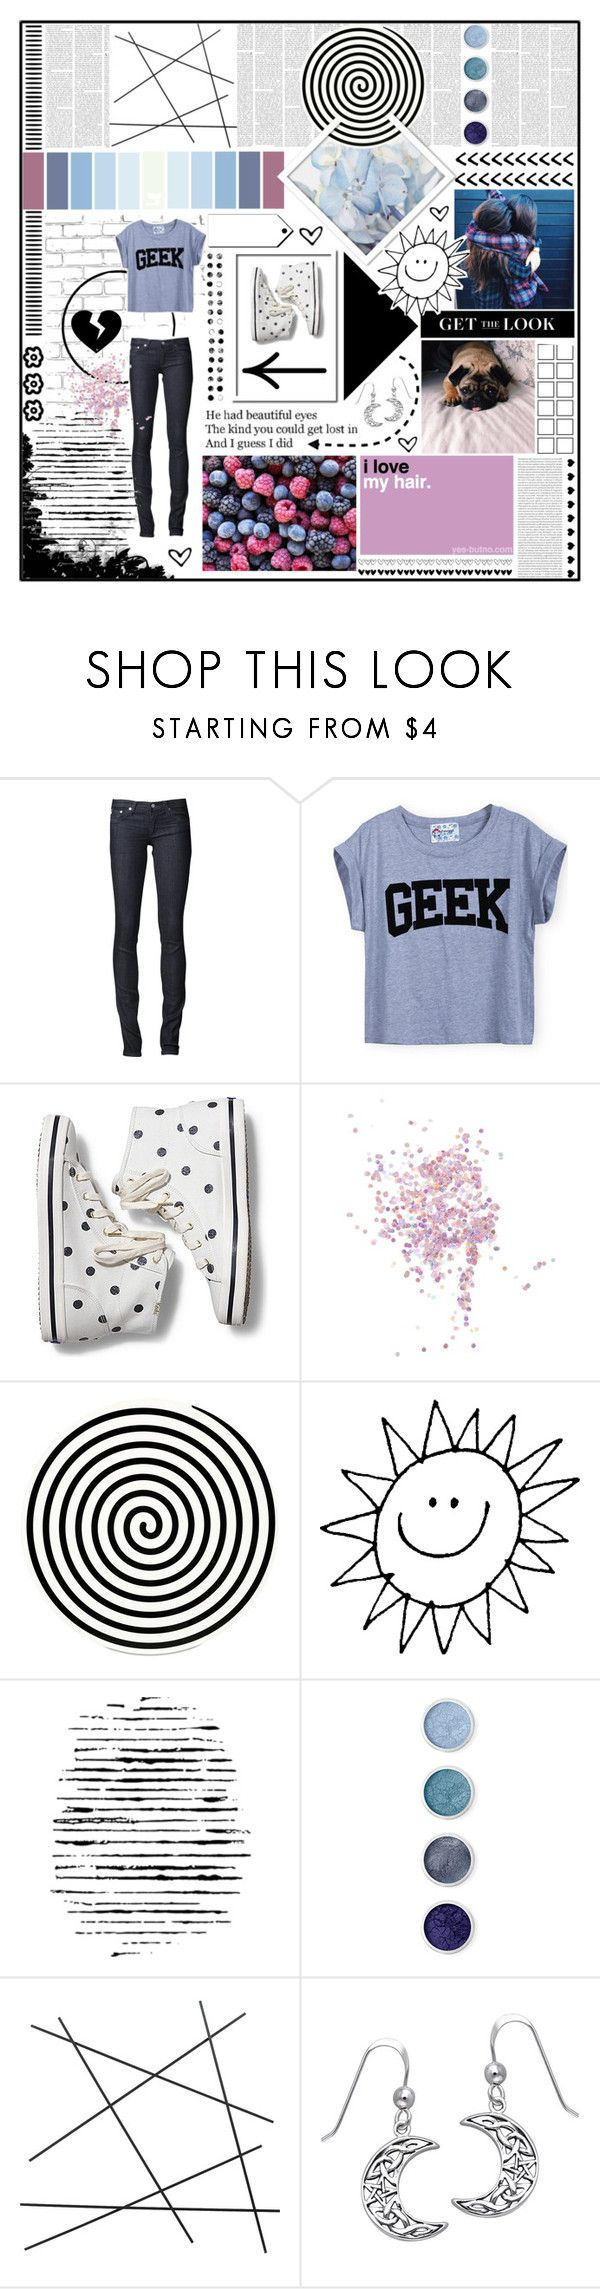 """""""polka polka dots"""" by holly-elizabeth ❤ liked on Polyvore featuring WALL, AG Adriano Goldschmied, Keds, PAM, Topshop, Altreforme, Camp, Terre Mère, CB2 and Carolina Glamour Collection"""